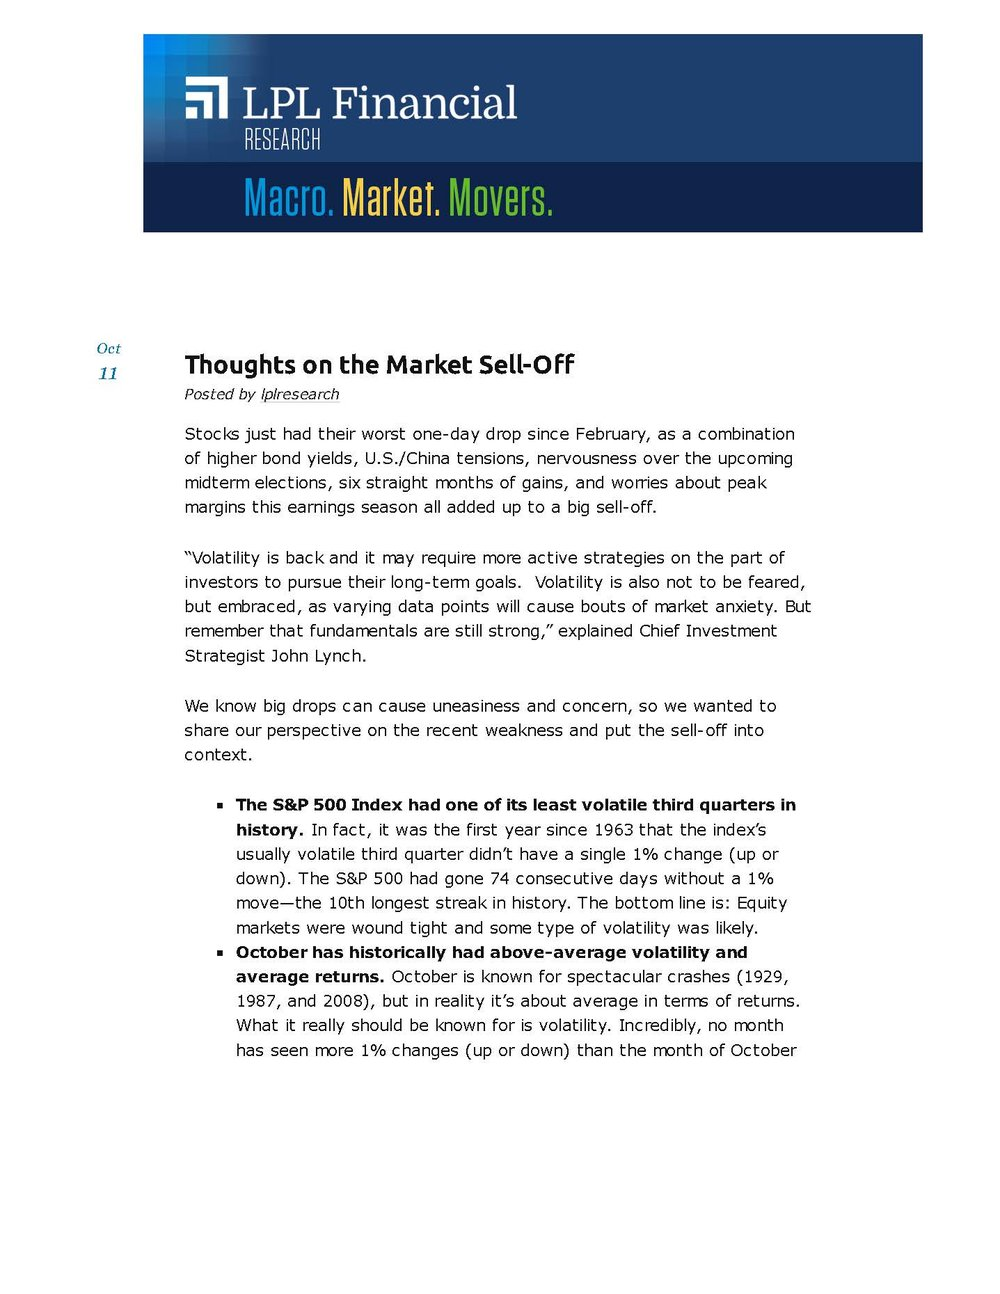 Thoughts on the Market Sell-Off _ LPL Financial Research_Page_1.jpg